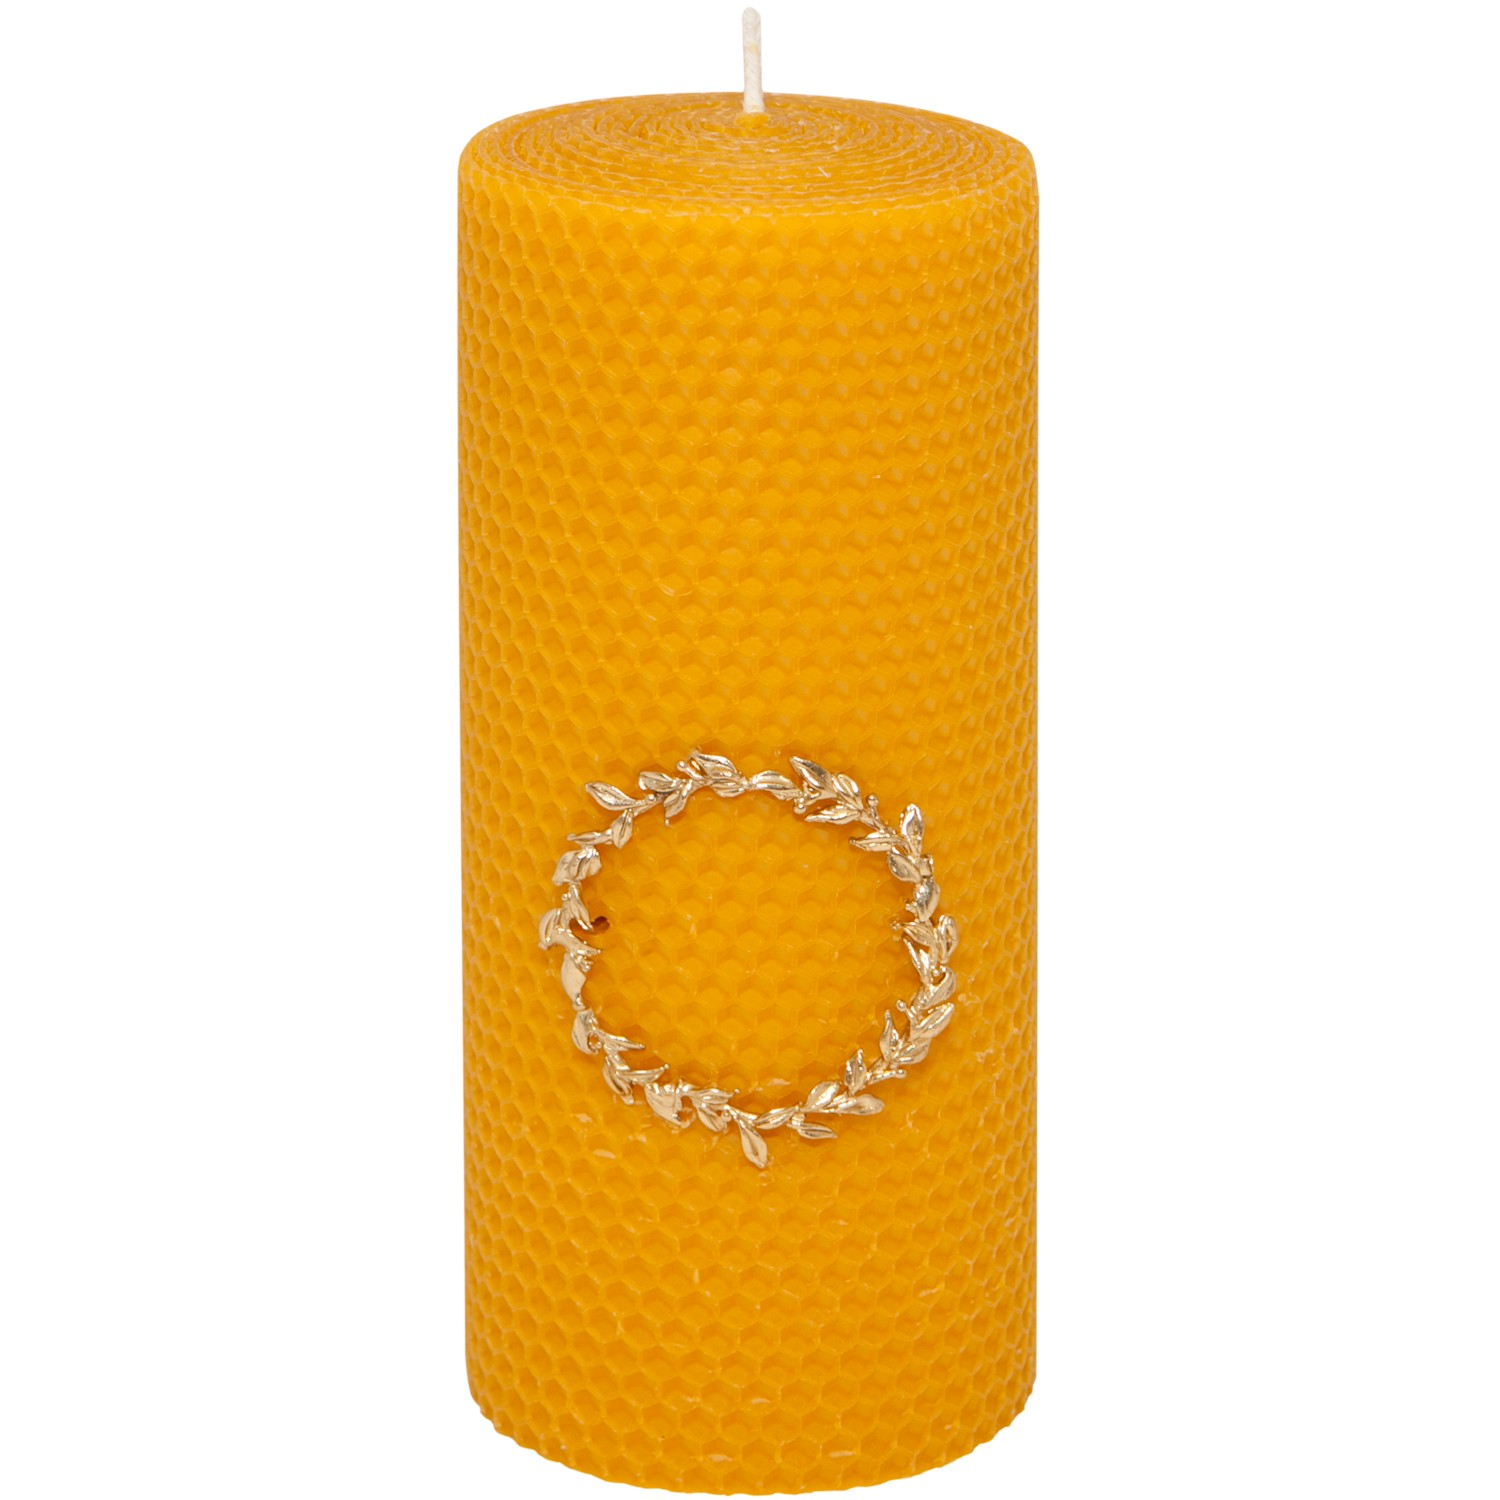 Beeswax Candles for Sale -A